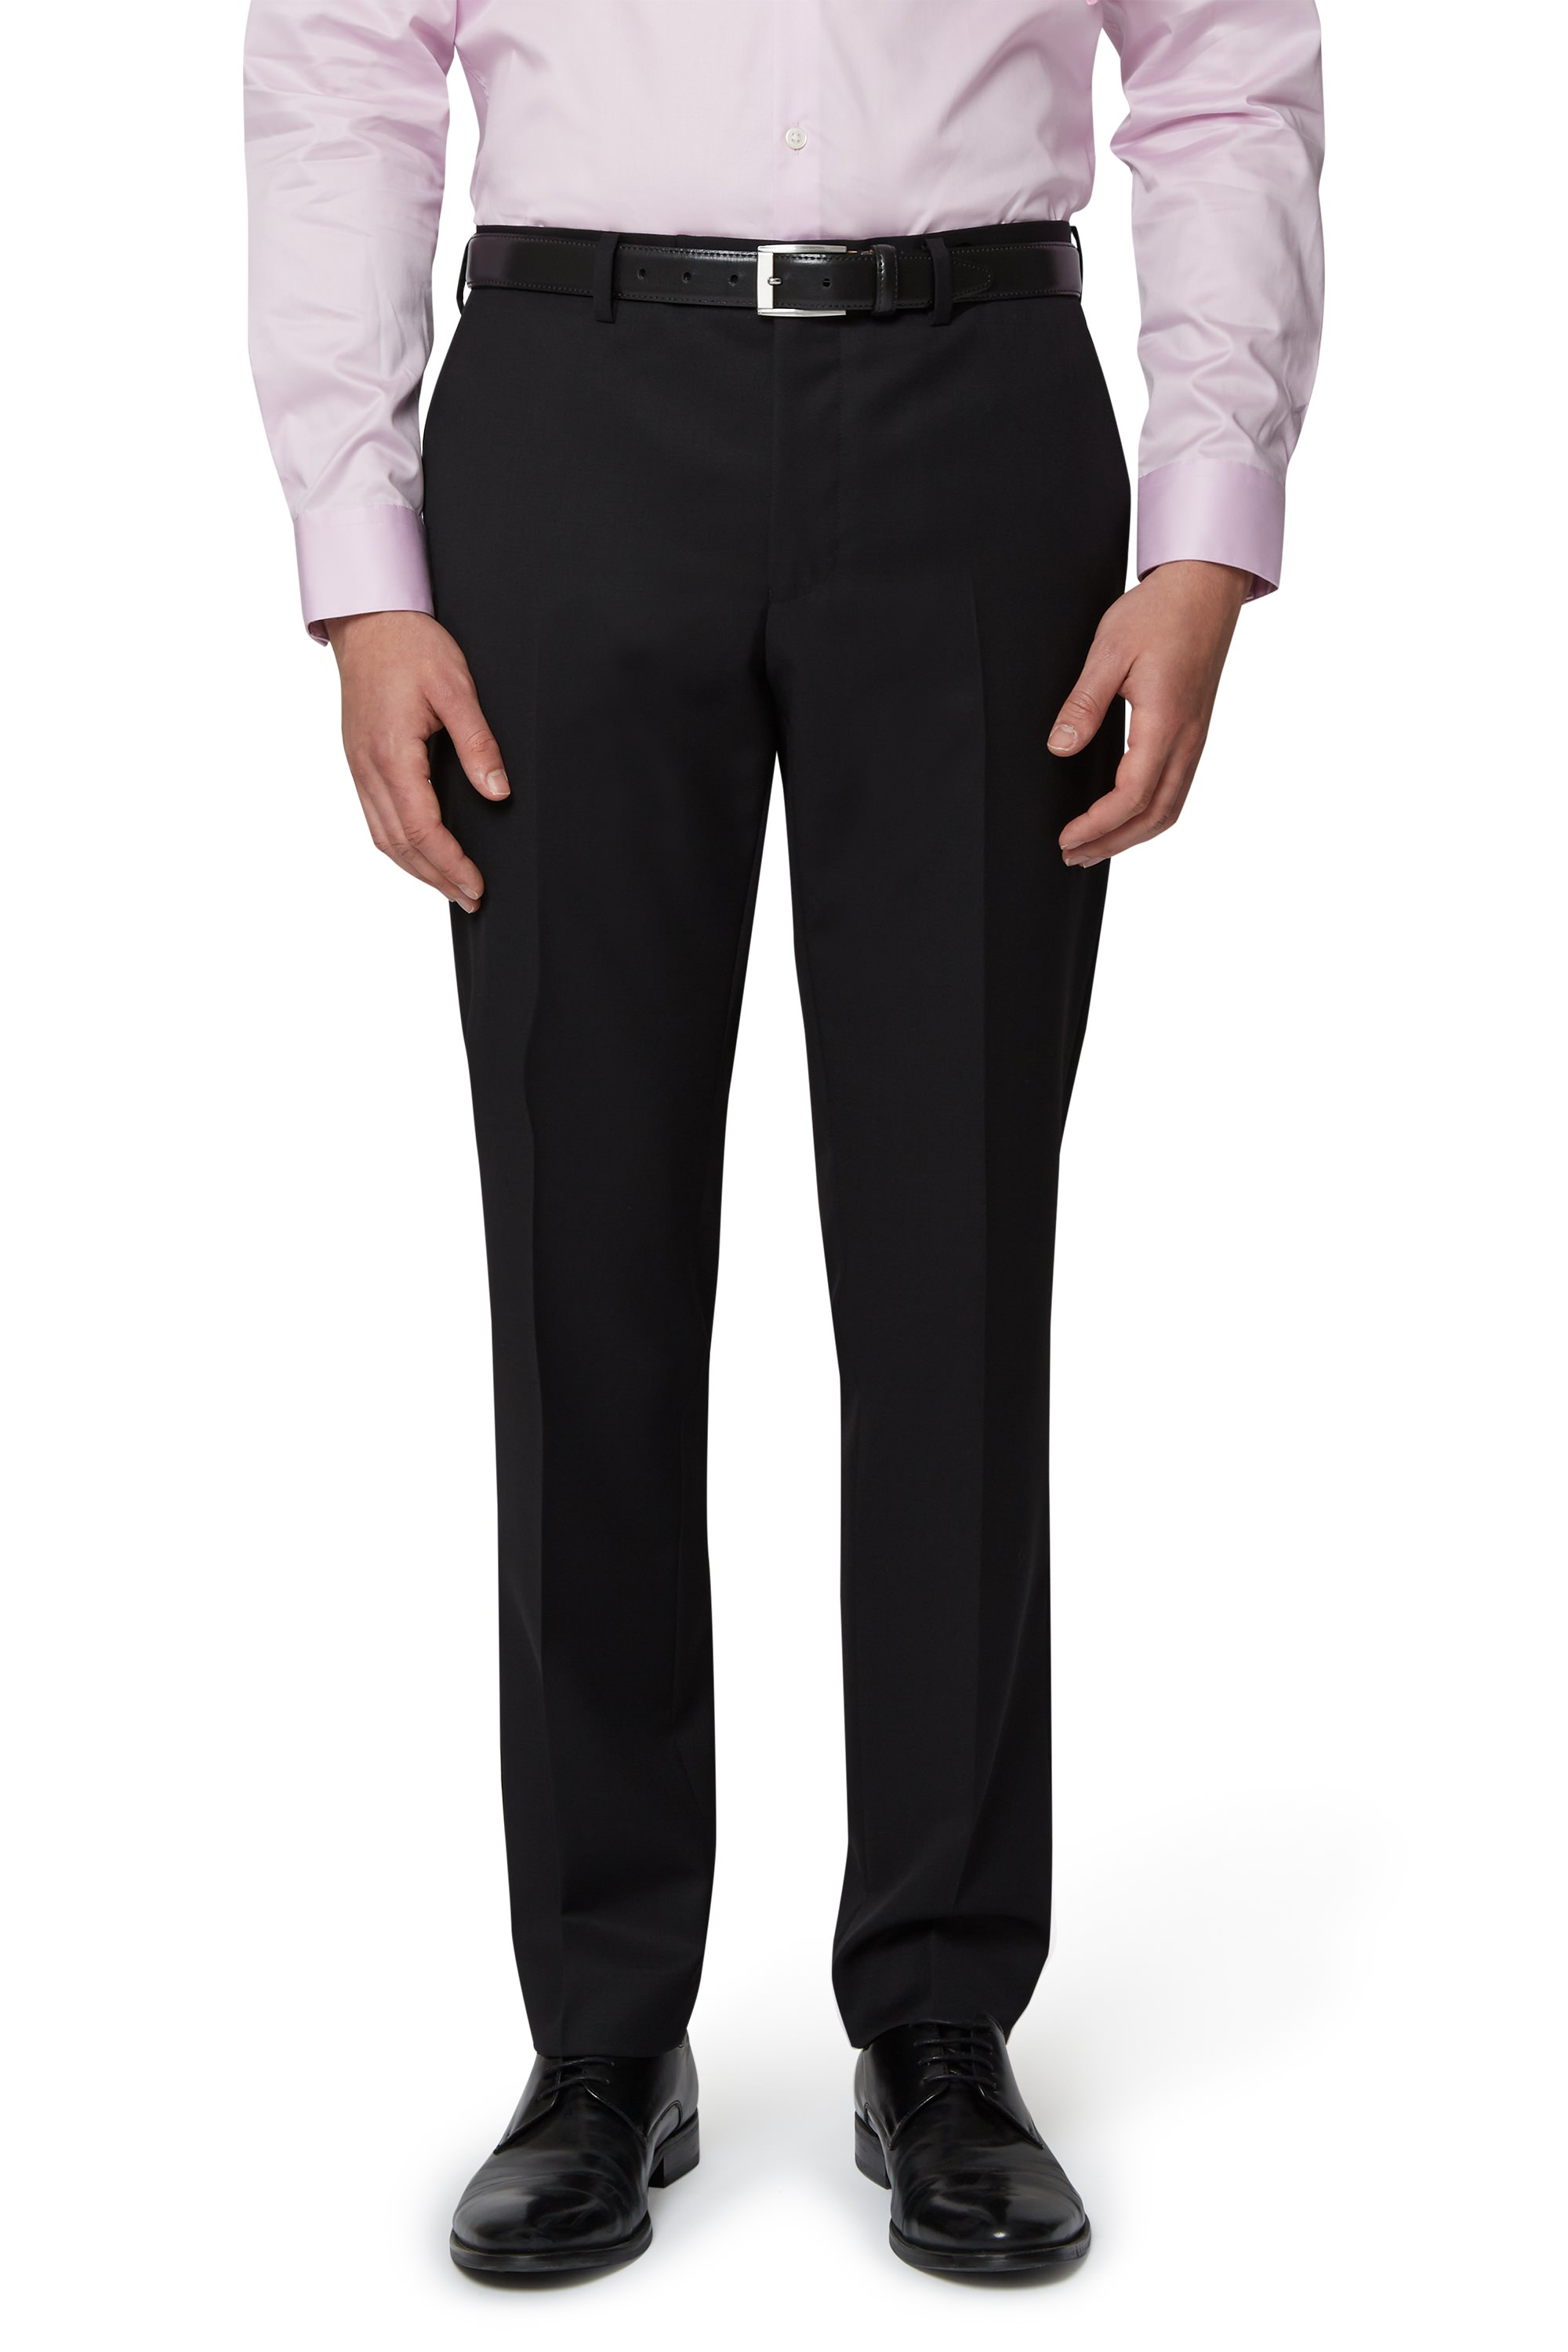 > Trouser Pants. Trouser Pants. FEATURES Let's Work Together Must Have Looks Autumn Rose Menswear Inspired Modern Match Best Sellers Online Exclusives Clothing New Arrivals. Wild Moss Black. Quick Shop. The Madison Trouser In Speckled Twill. $ star rating.